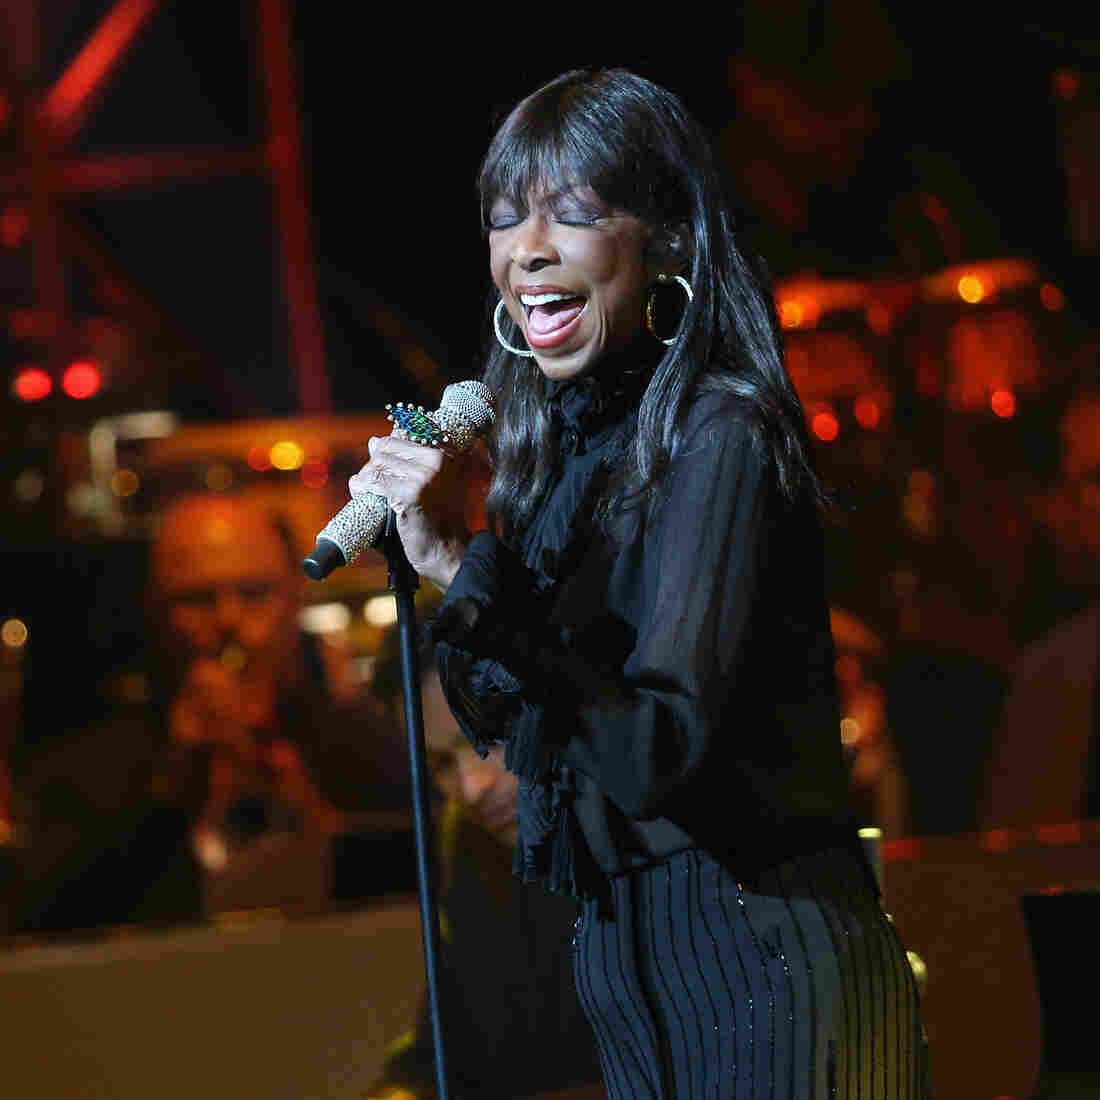 Singer Natalie Cole performs onstage during the SeriousFun Children's Network 2015 Los Angeles Gala celebrating the legacy of Paul Newman on May 14 in Hollywood.